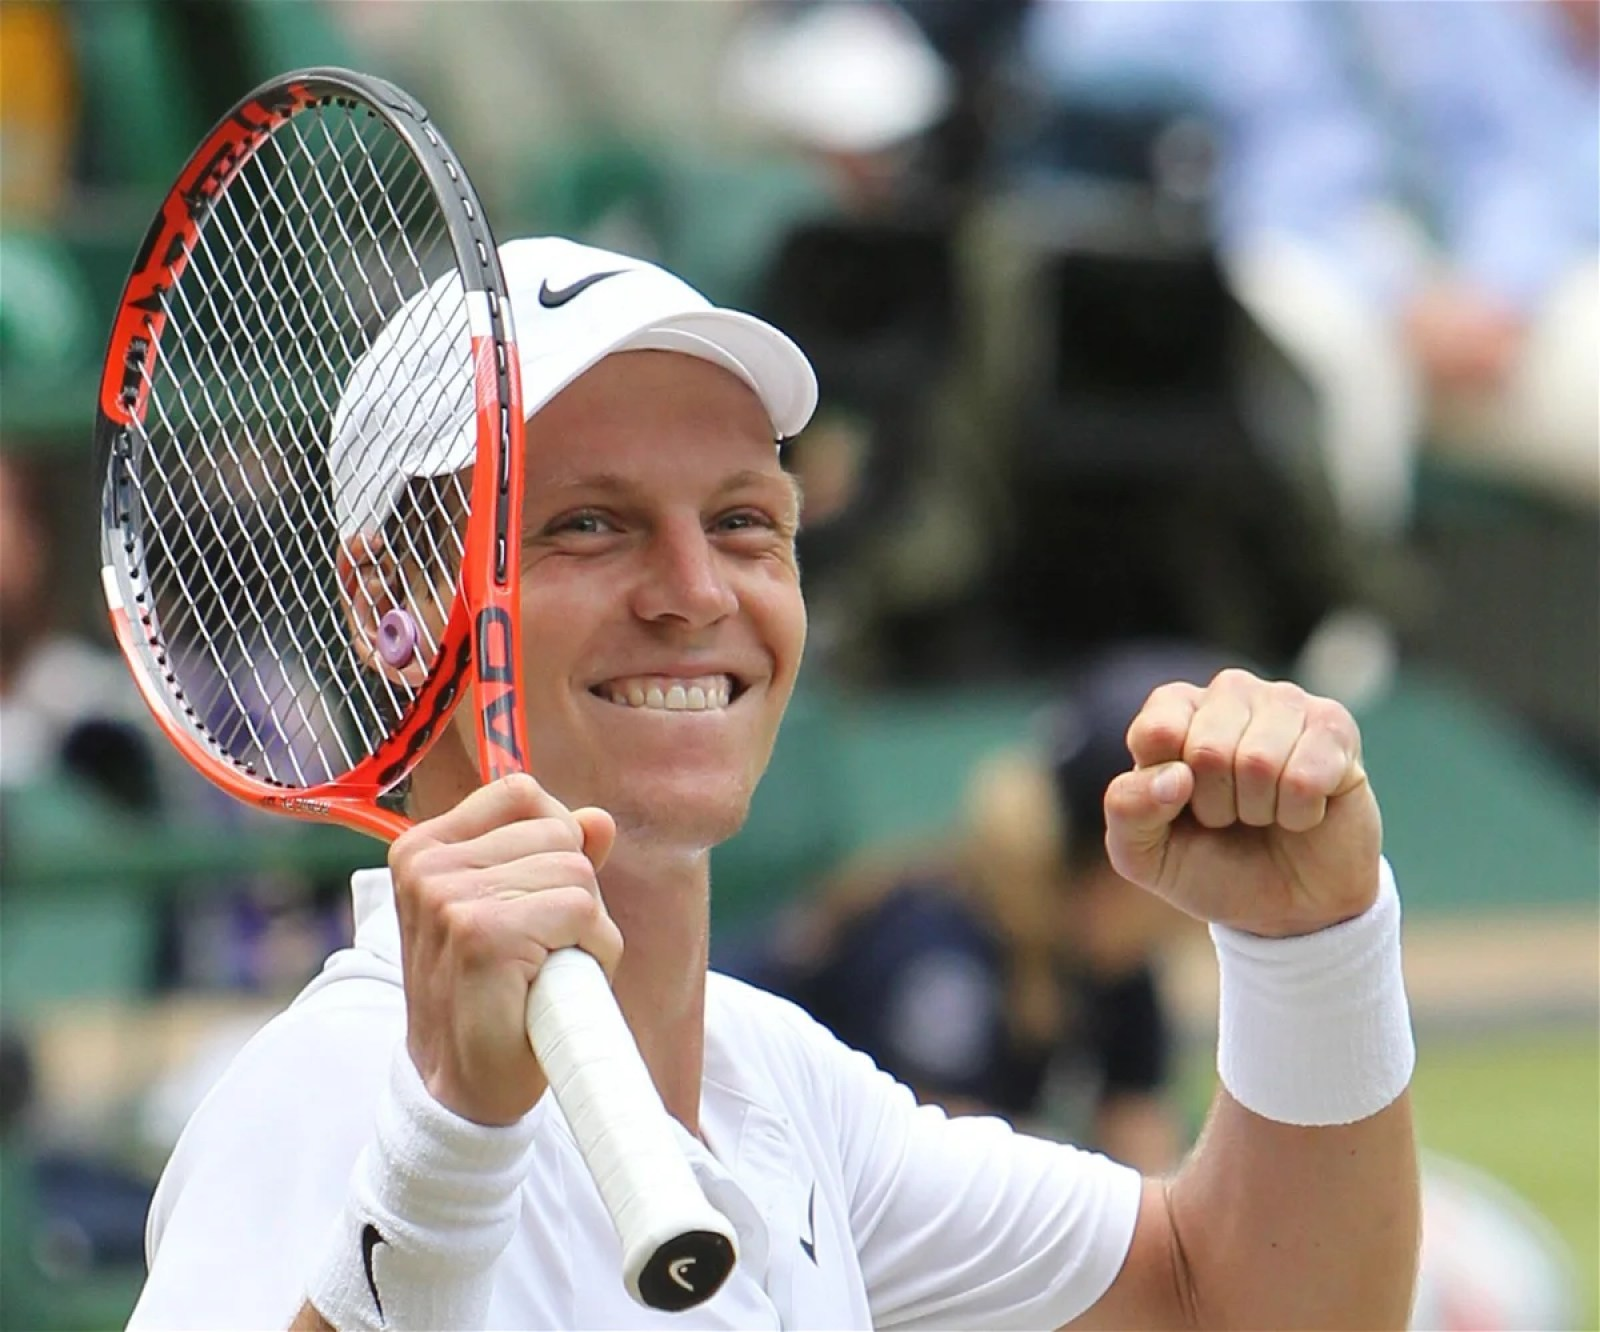 Tomas Berdych Hints At Return To Professional Tennis